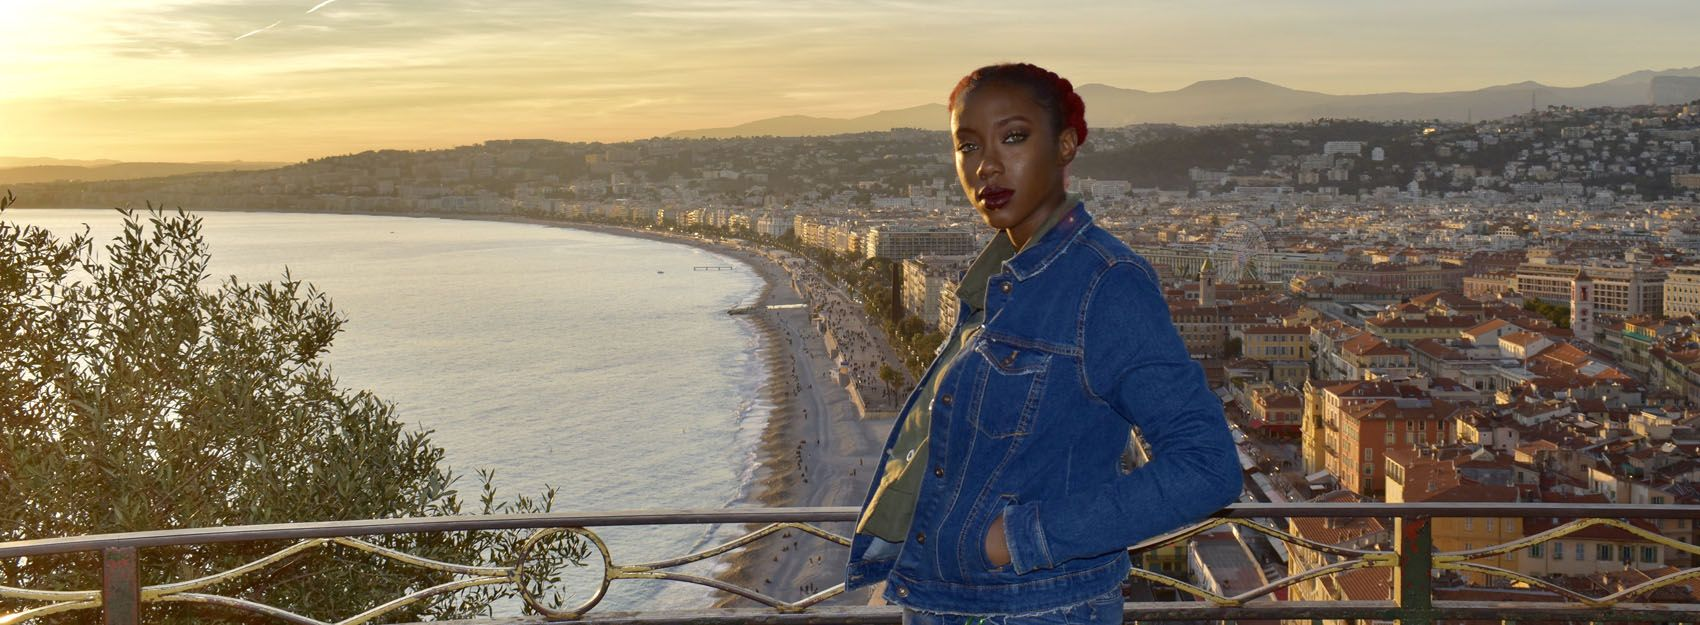 student wearing denim jacket standing overlooking Nice shoreline